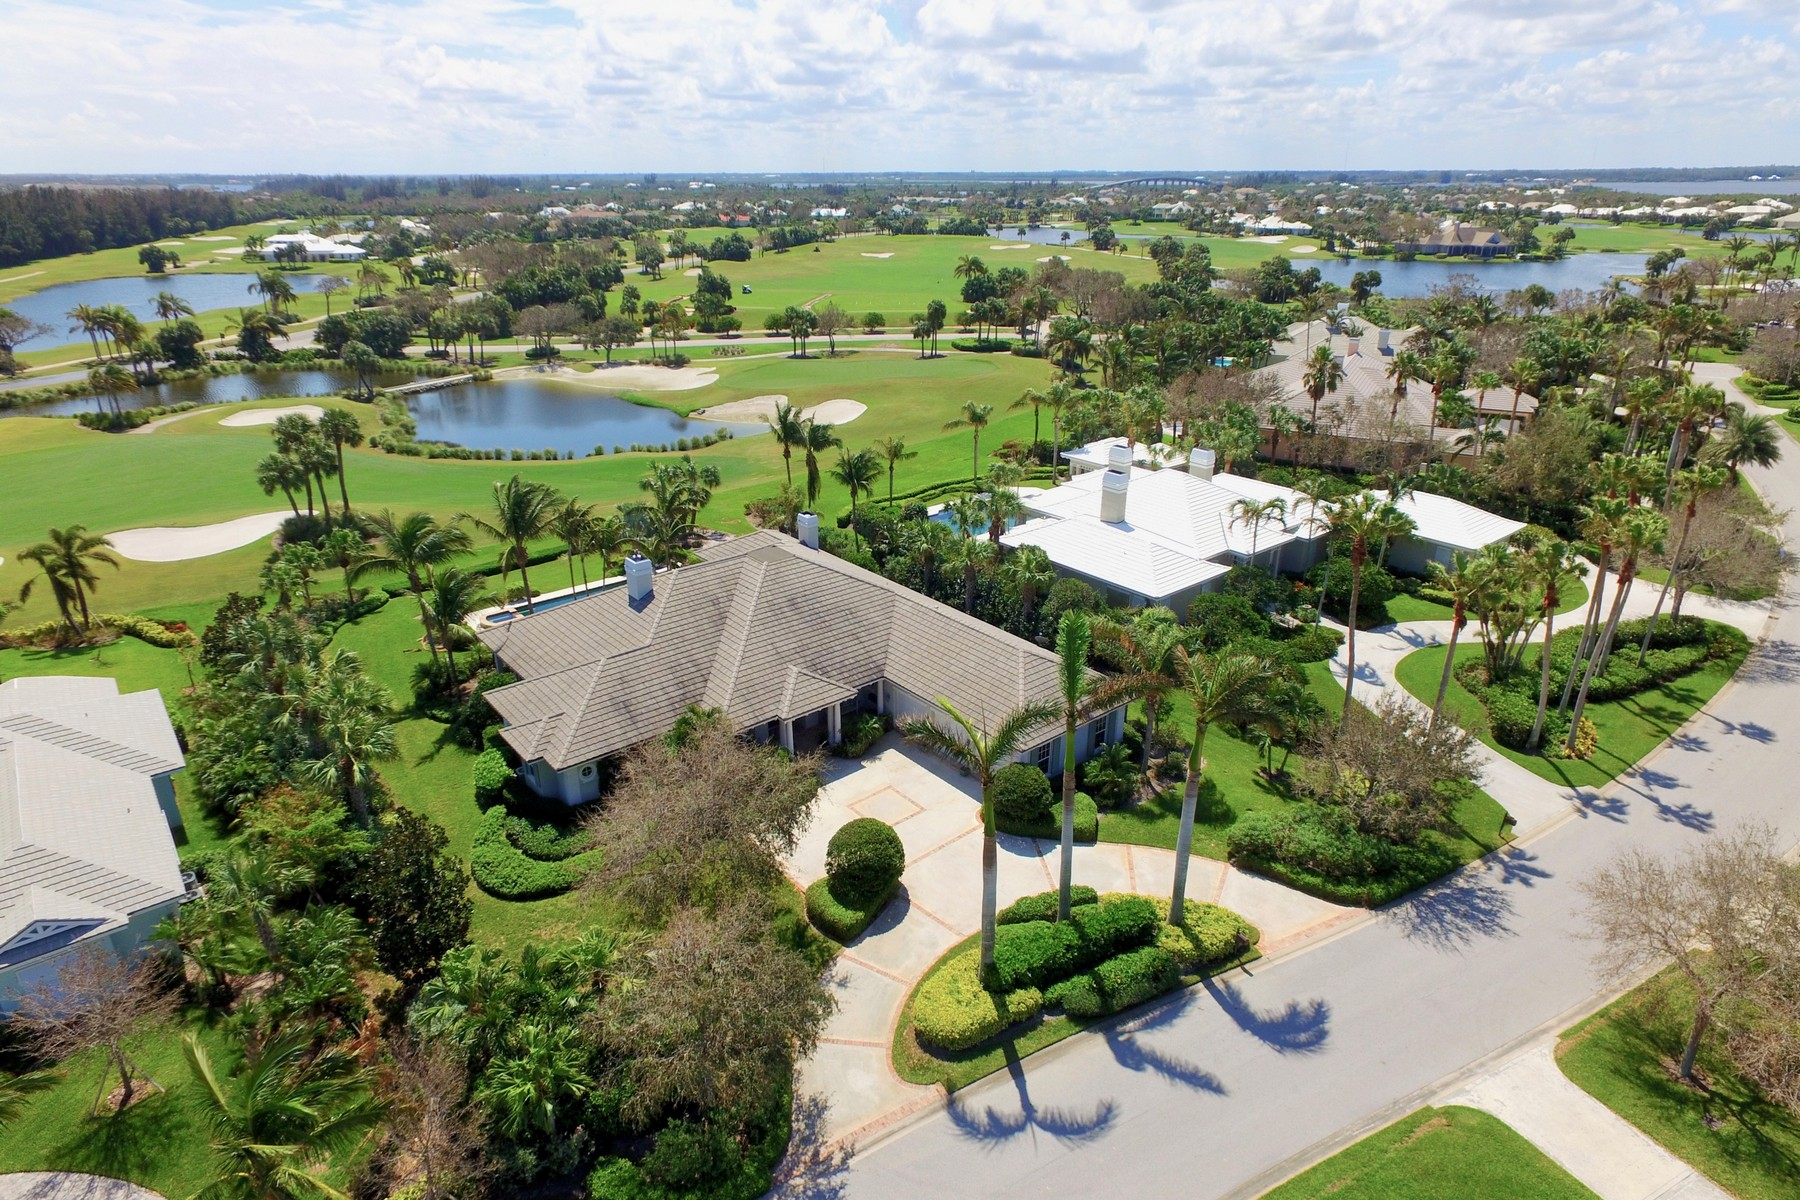 Casa para uma família para Venda às Lakefront Home with Endless Golf Views 130 Seaspray Lane, Vero Beach, Florida, 32963 Estados Unidos